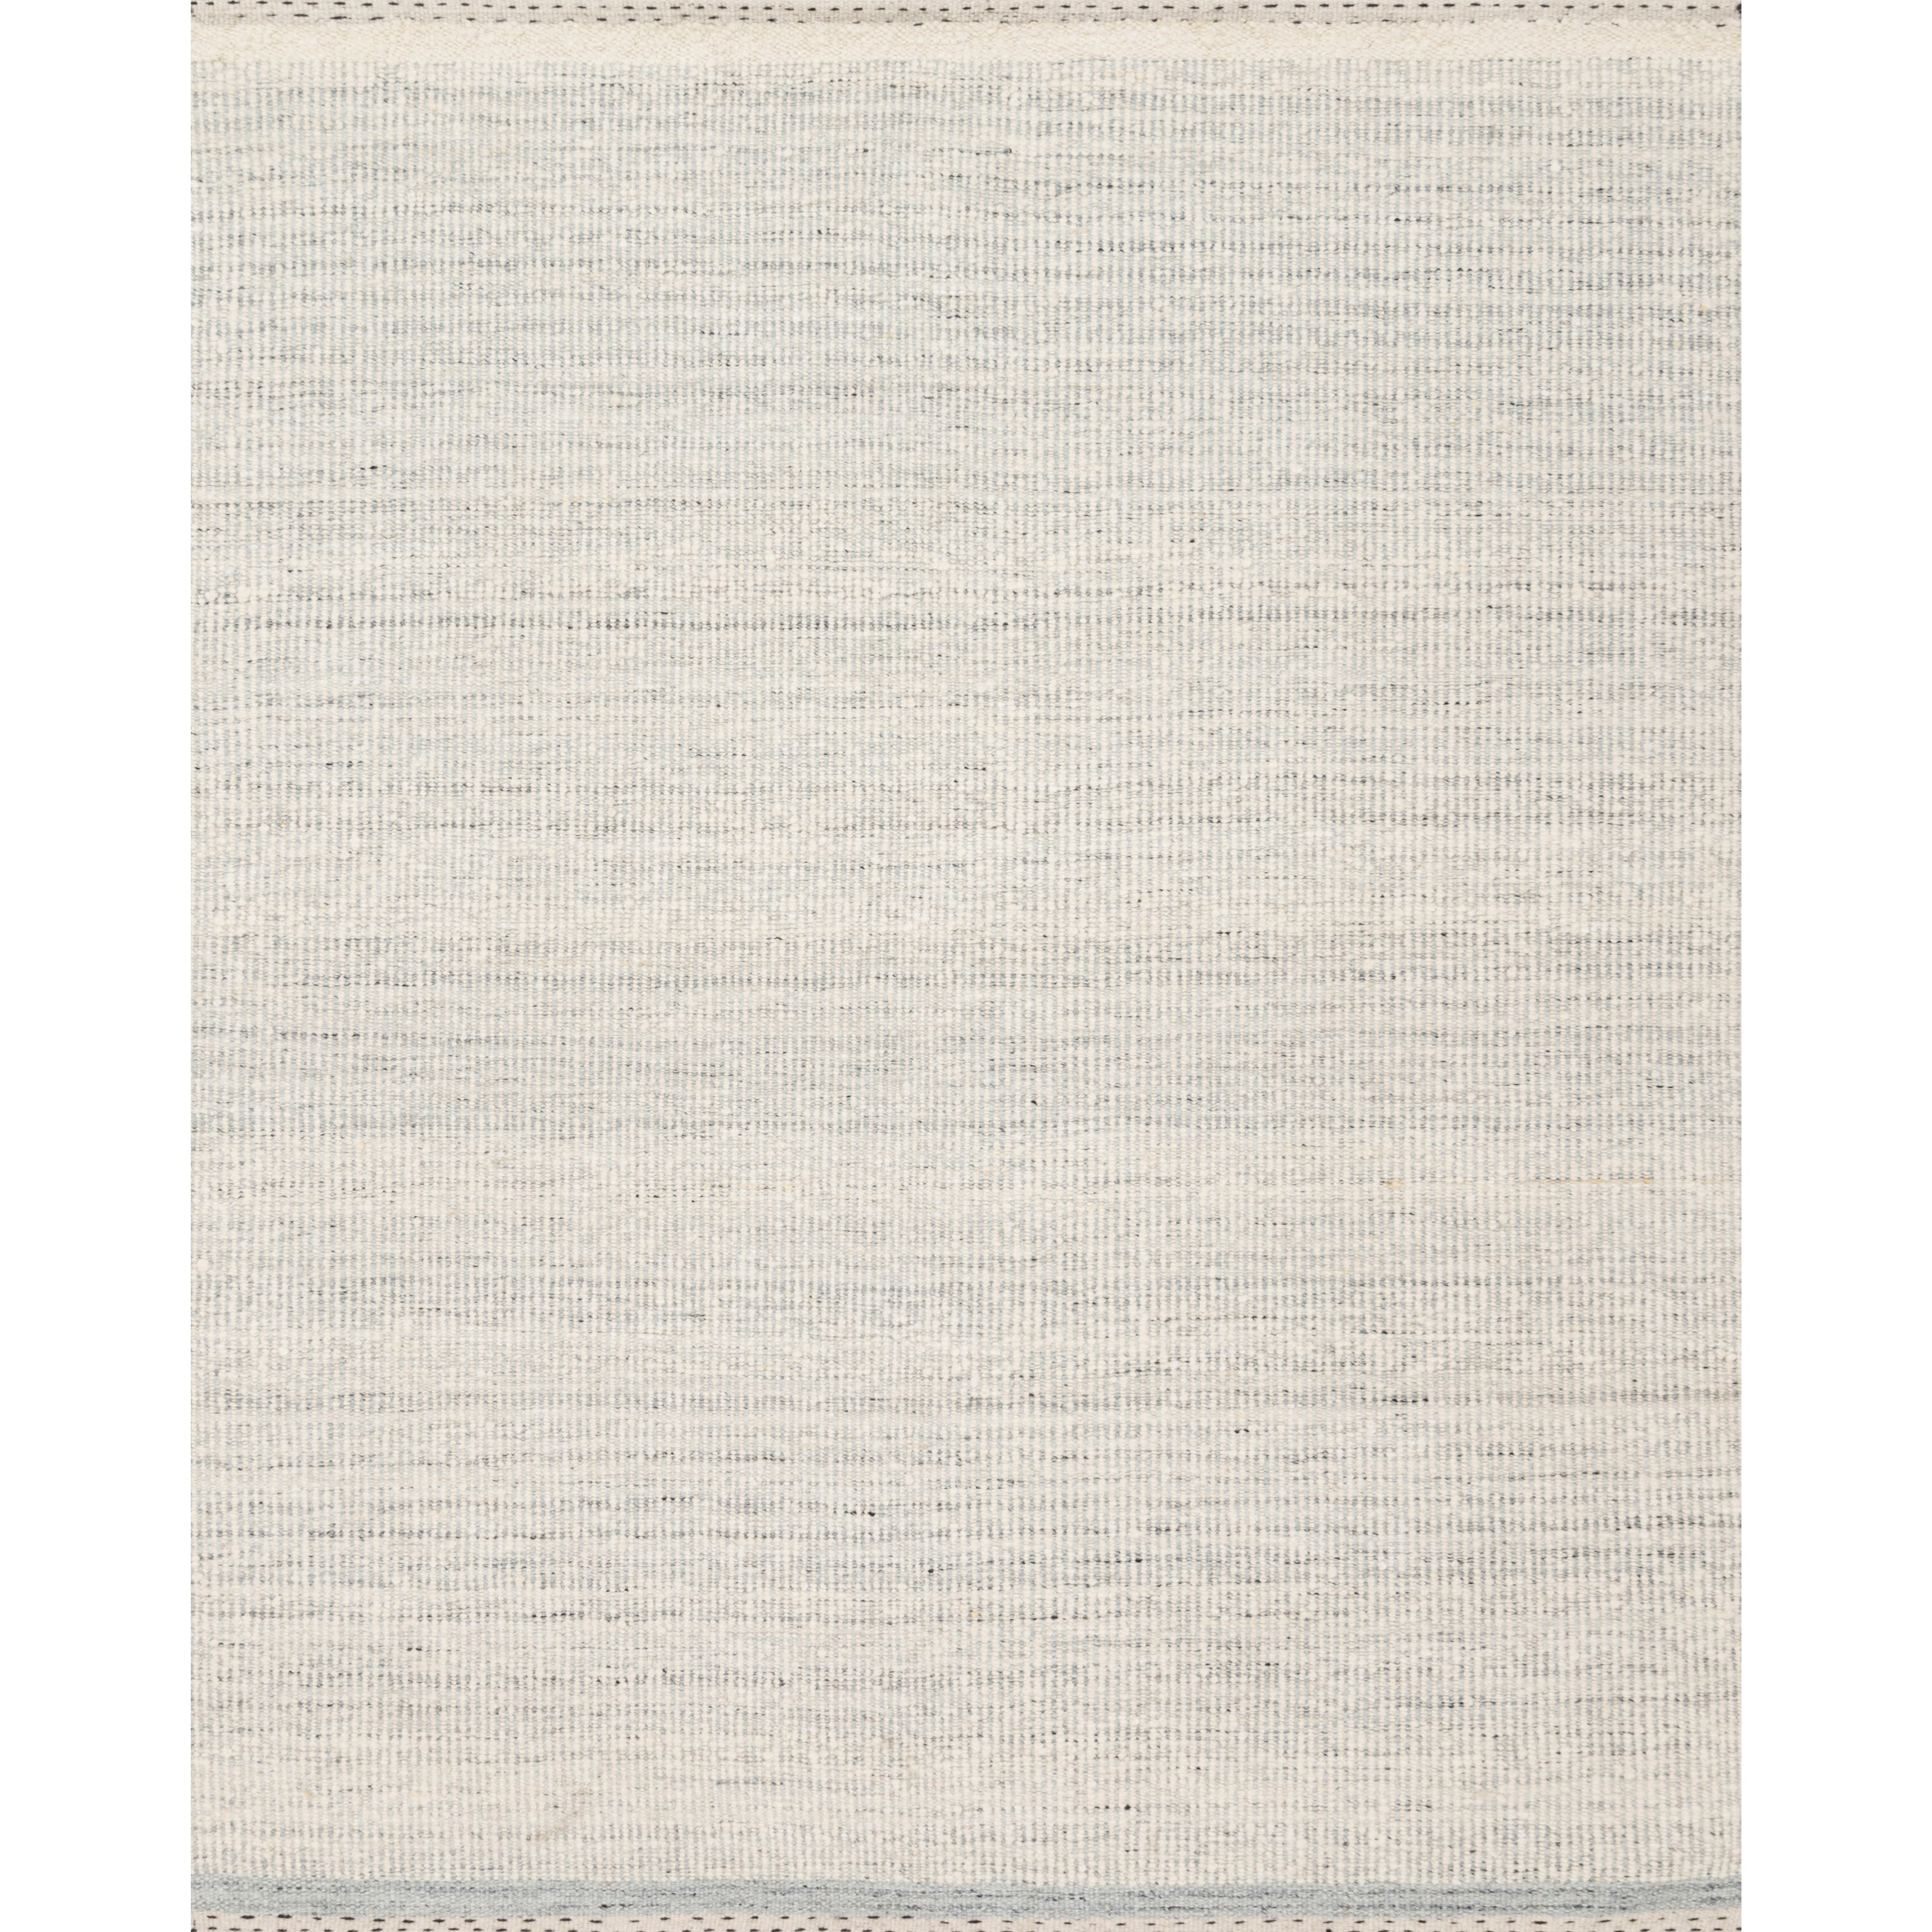 """Sloane 5'0"""" x 7'6"""" Mist Rug by Loloi Rugs at Virginia Furniture Market"""